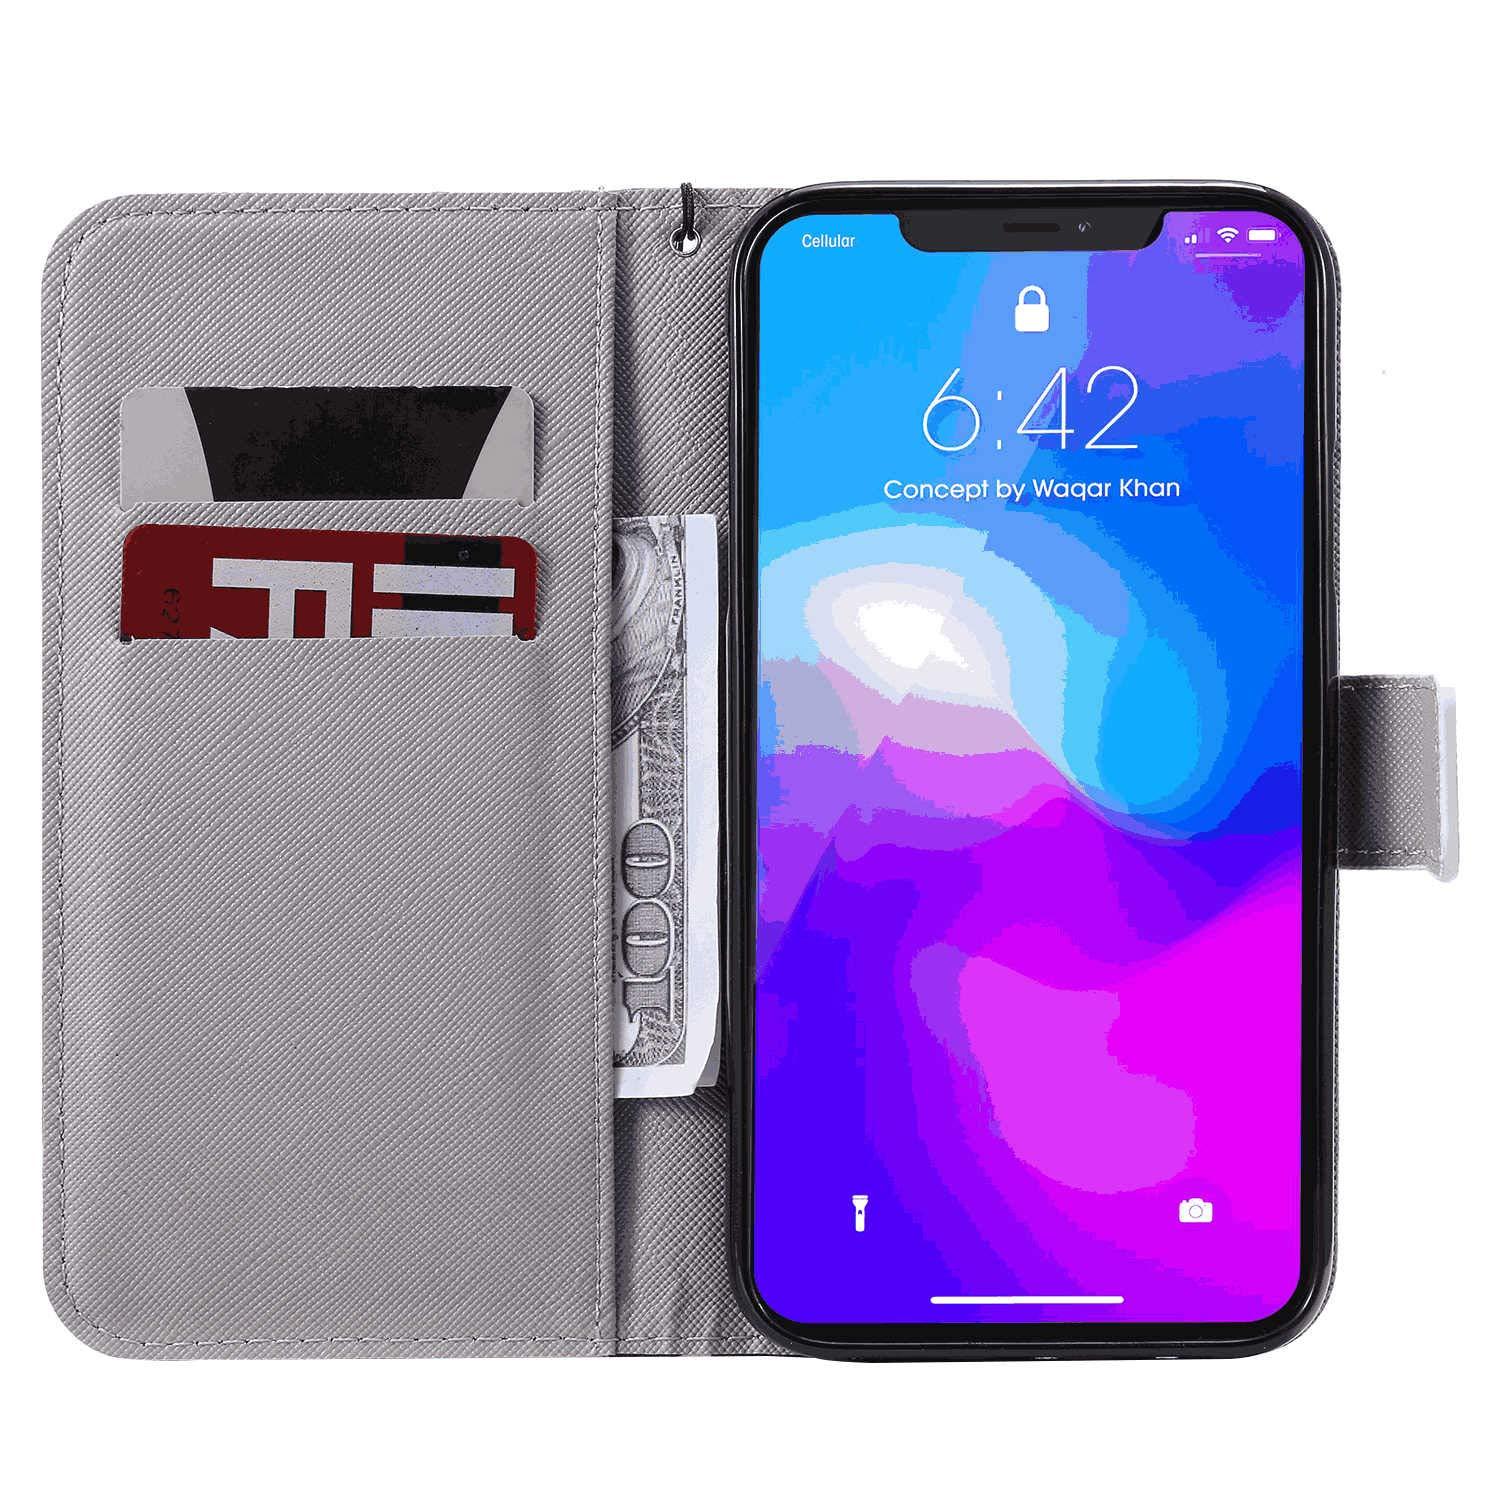 with Extra Waterproof Case Pouch Leather Case Compatible with iPhone 7 Plus Wallet Cover for iPhone 7 Plus Business Gifts